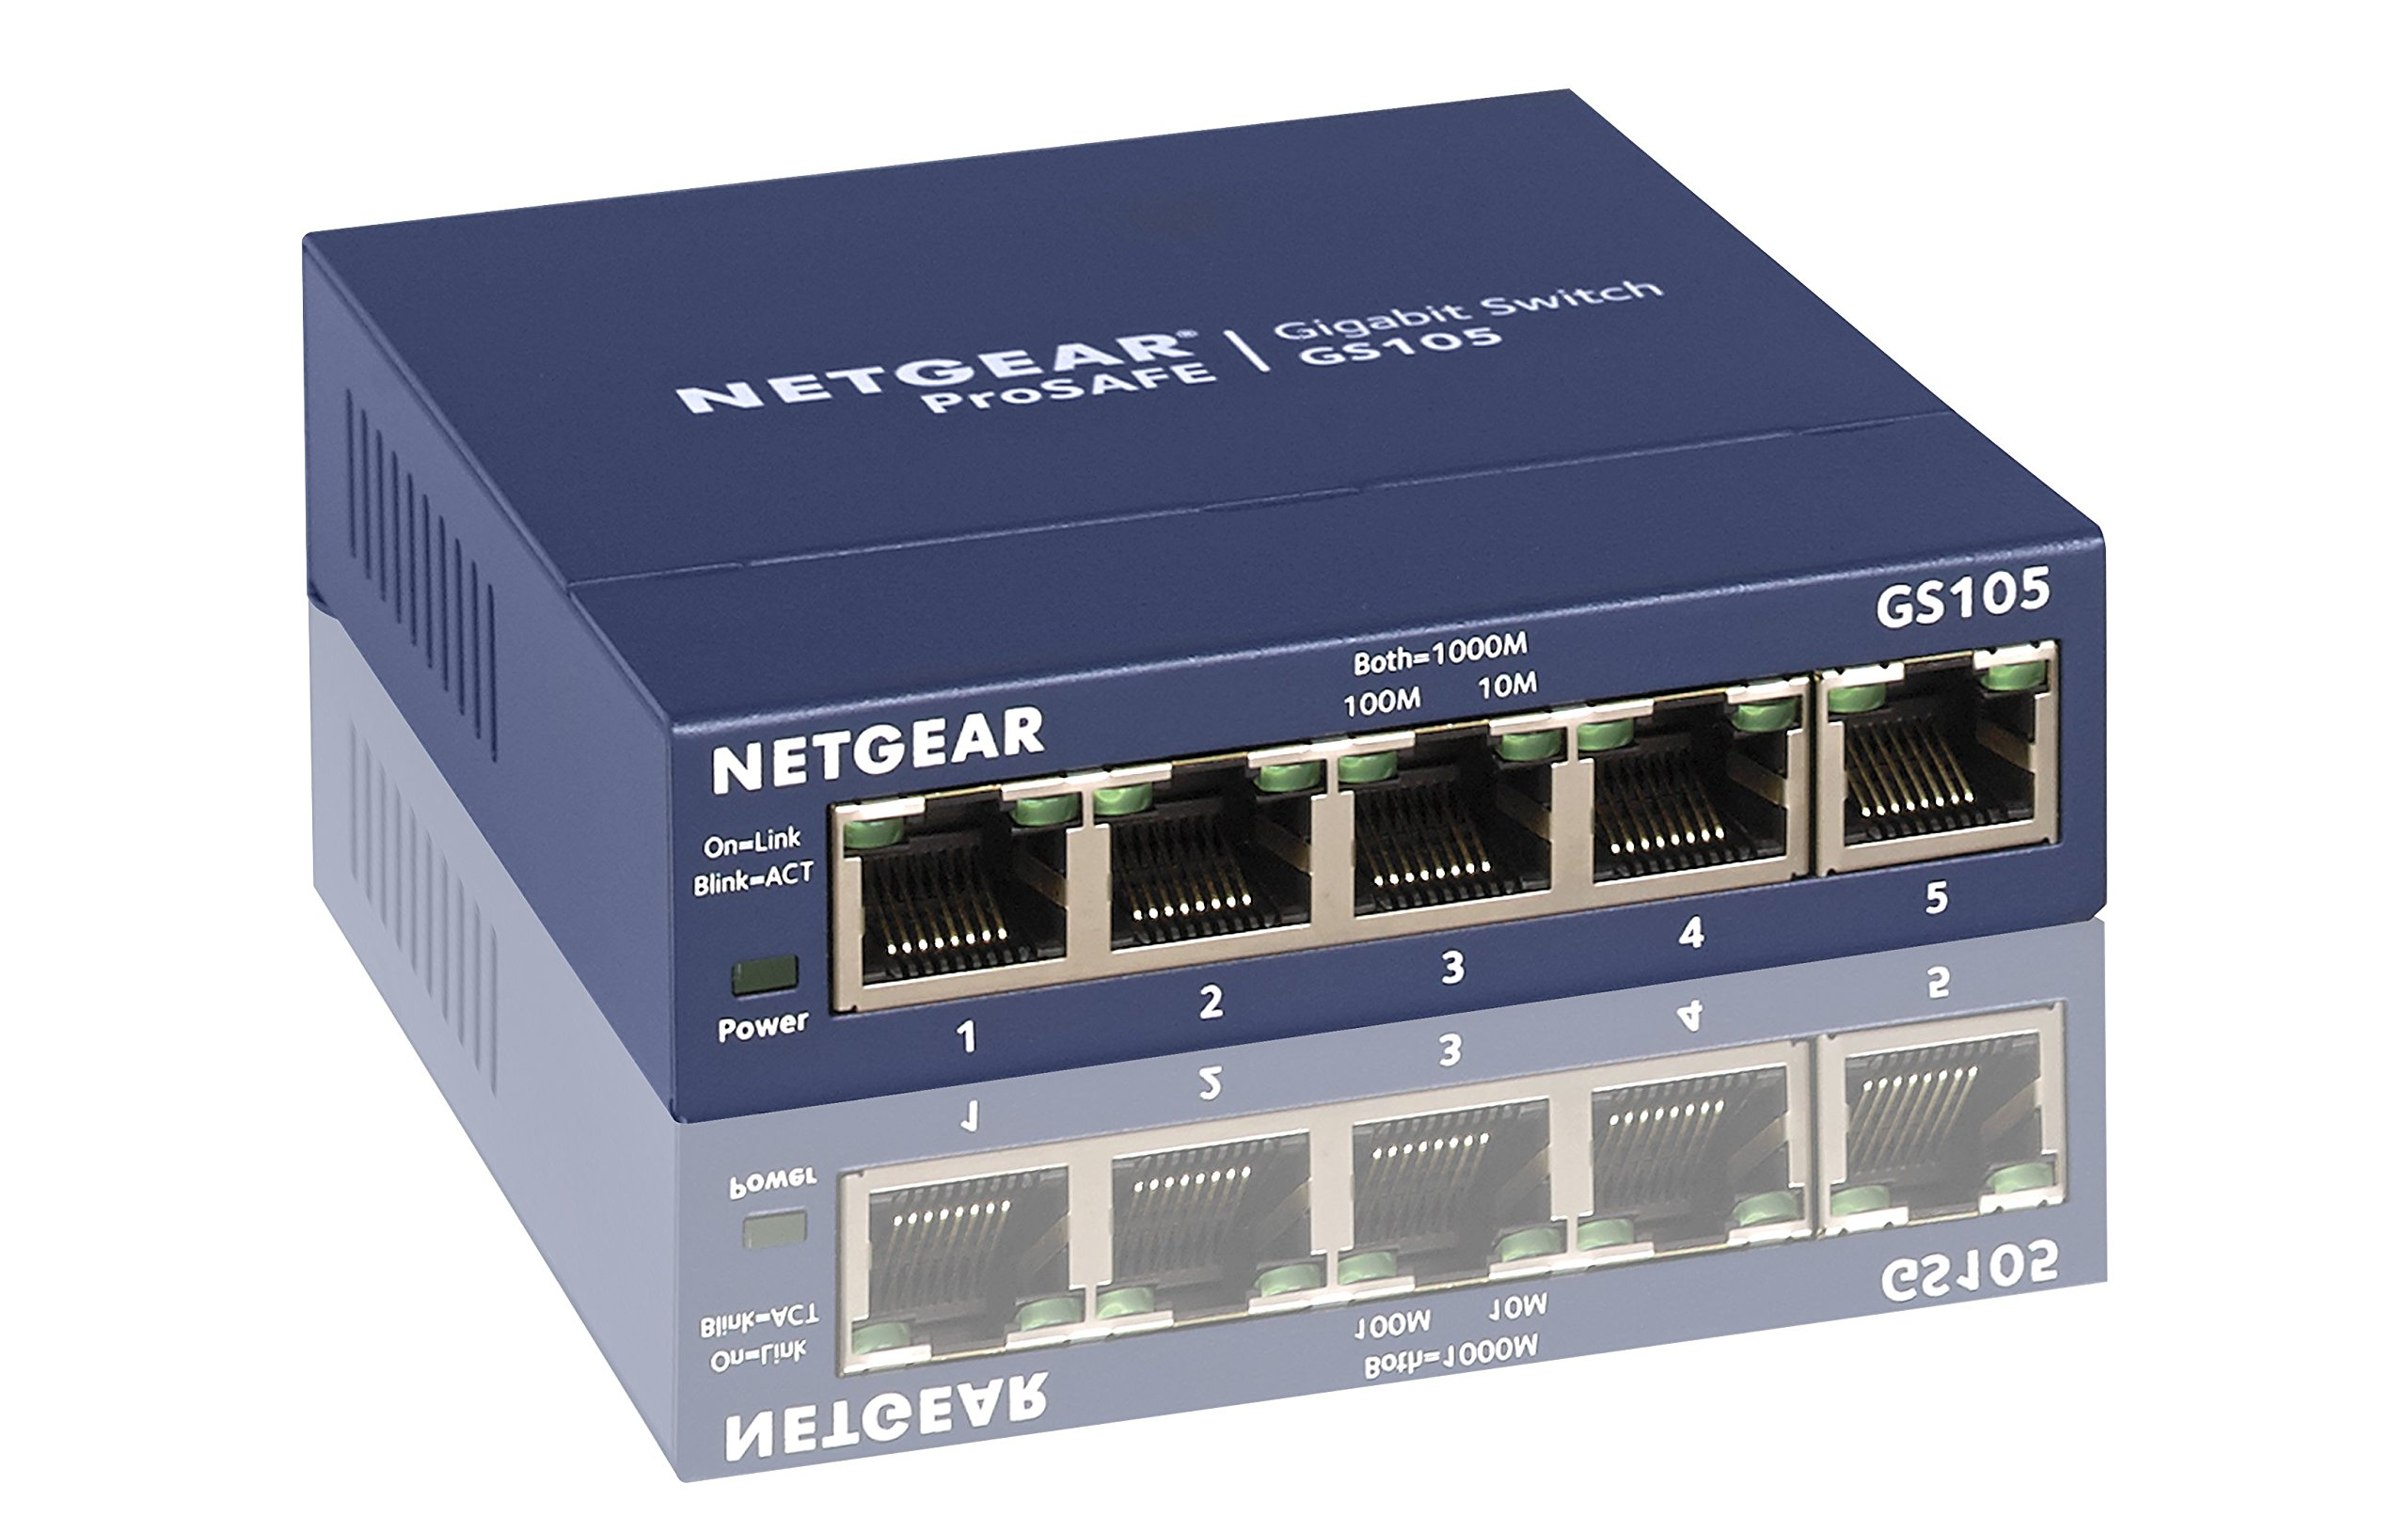 NETGEAR 5-Port Gigabit Ethernet Unmanaged Switch, Sturdy Metal, Desktop, Plug-and-Play, ProSAFE Lifetime Protection (GS105NA)